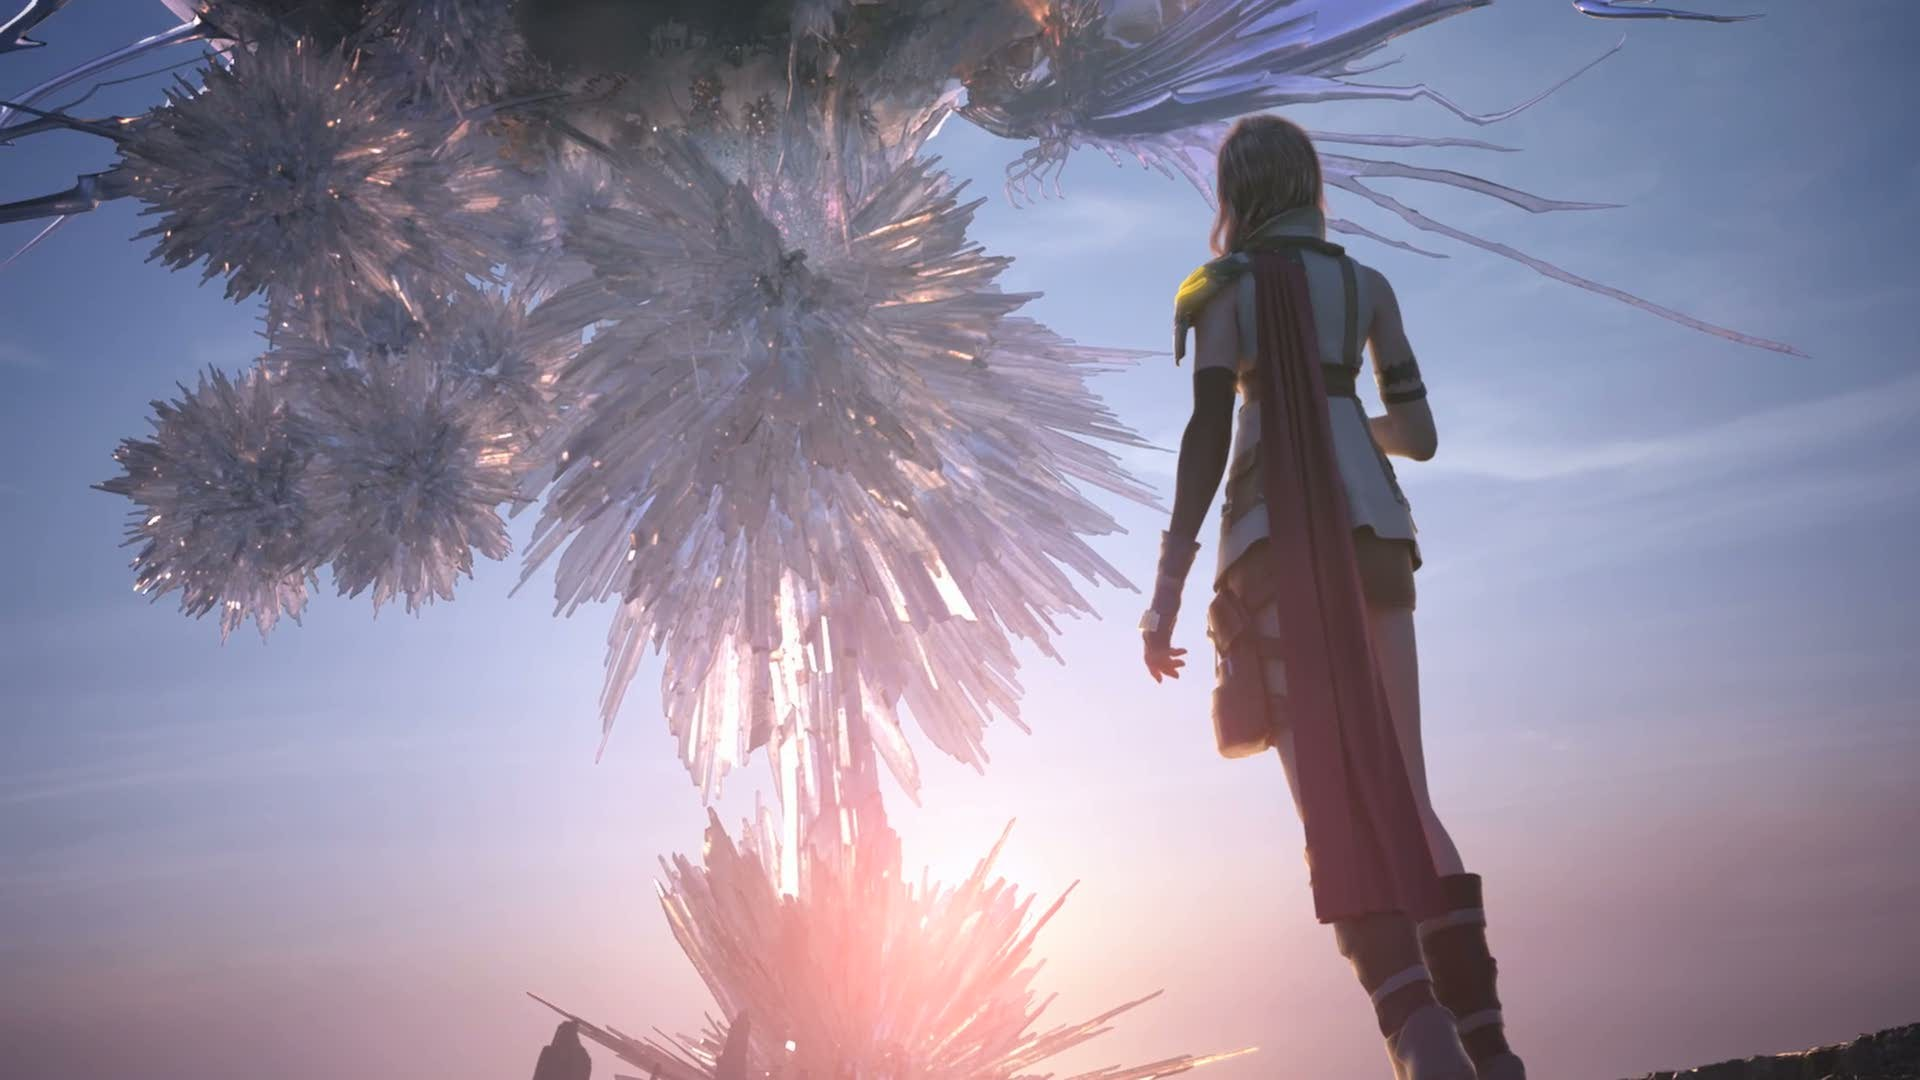 1920x1080 Final Fantasy Xiii Wallpaper 1080p 17118 HD Wallpapers | pictwalls.